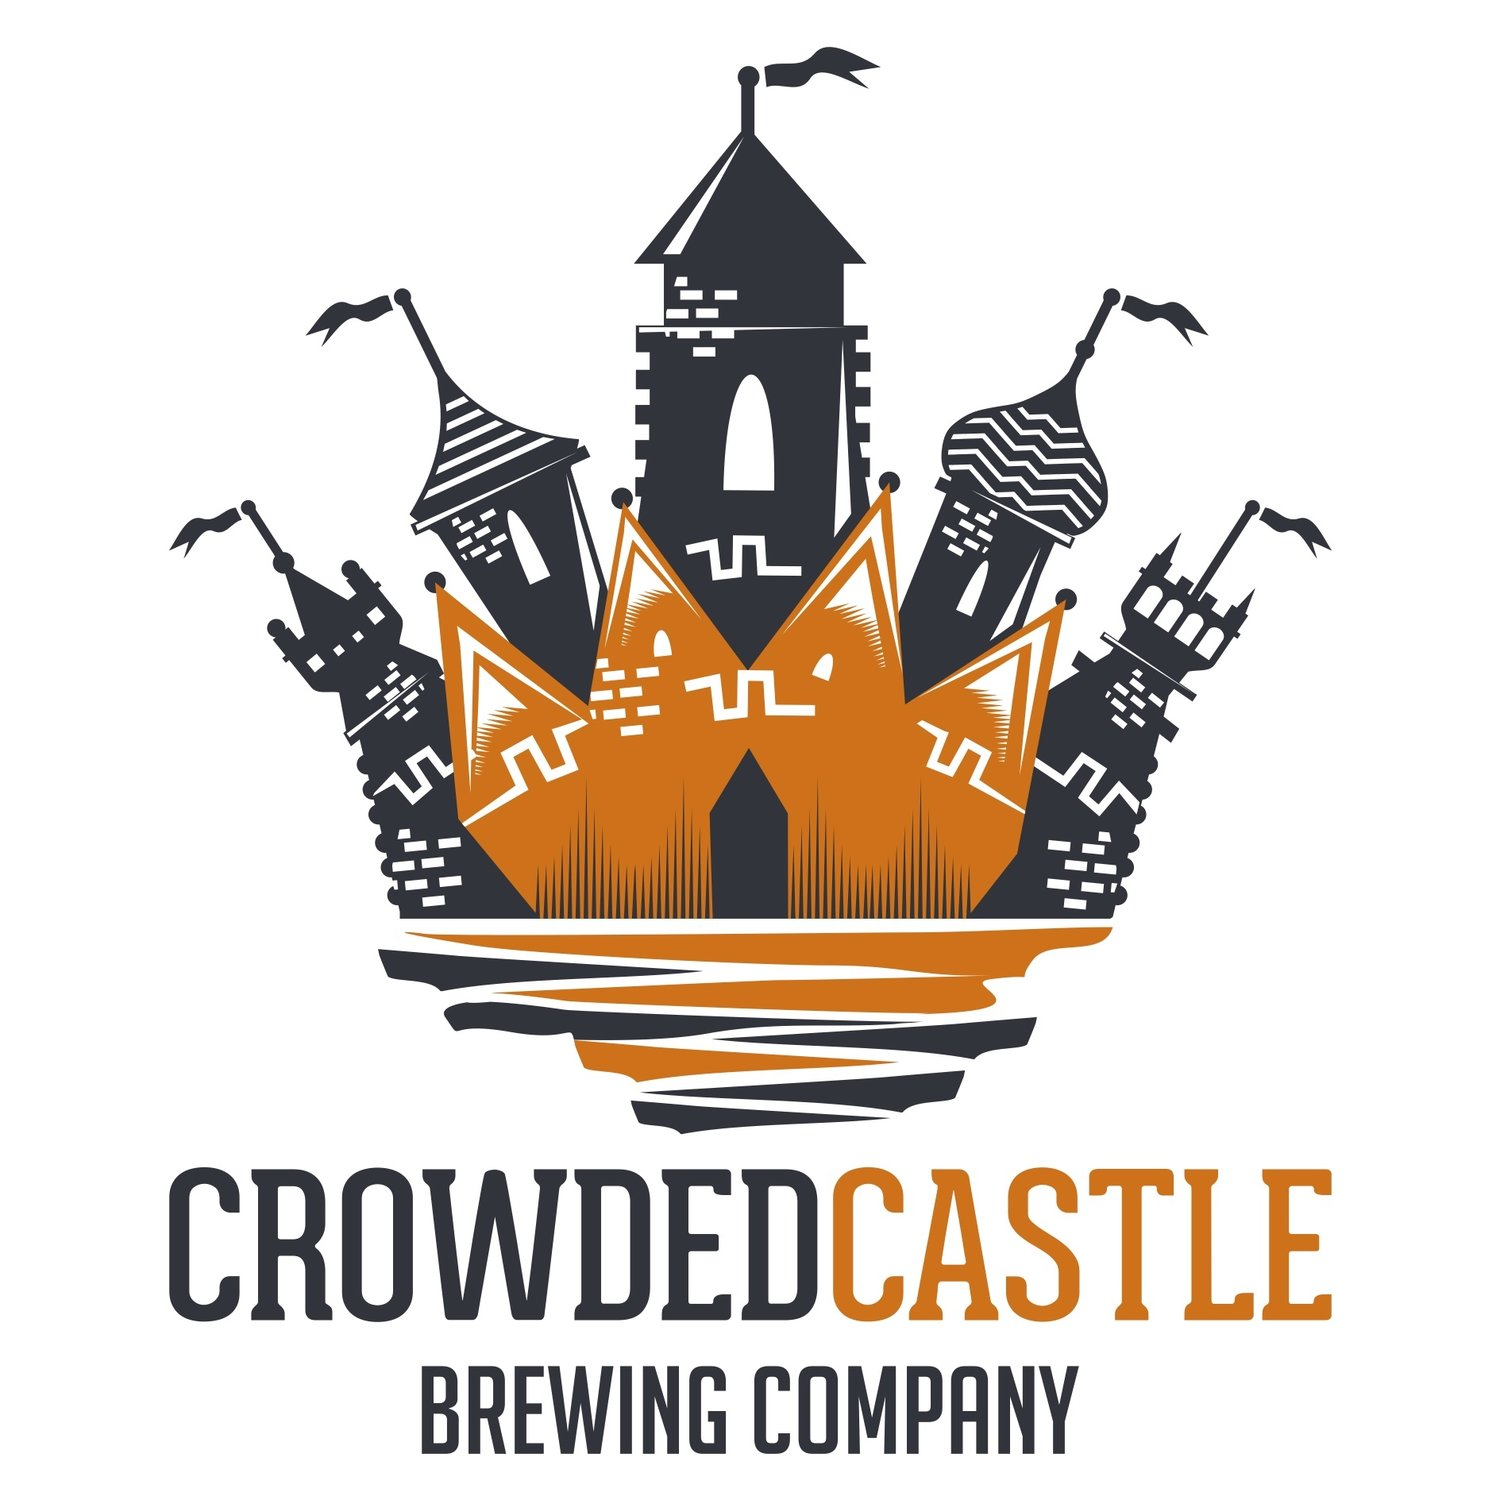 Crowded Castle Brewing Company, Inc